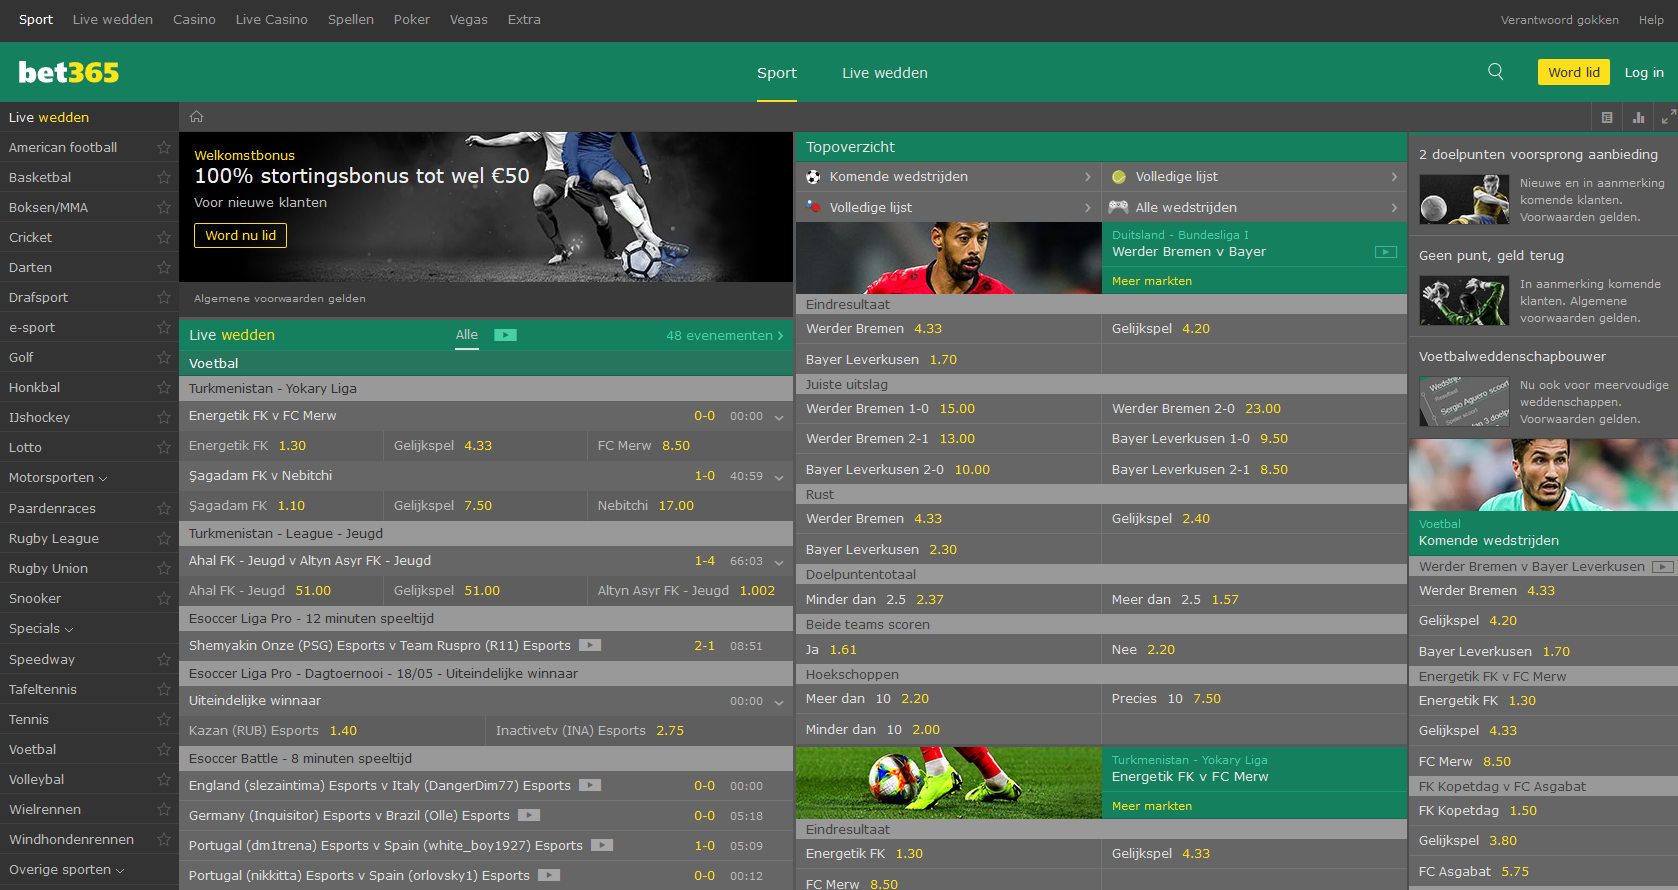 Bet365 official site